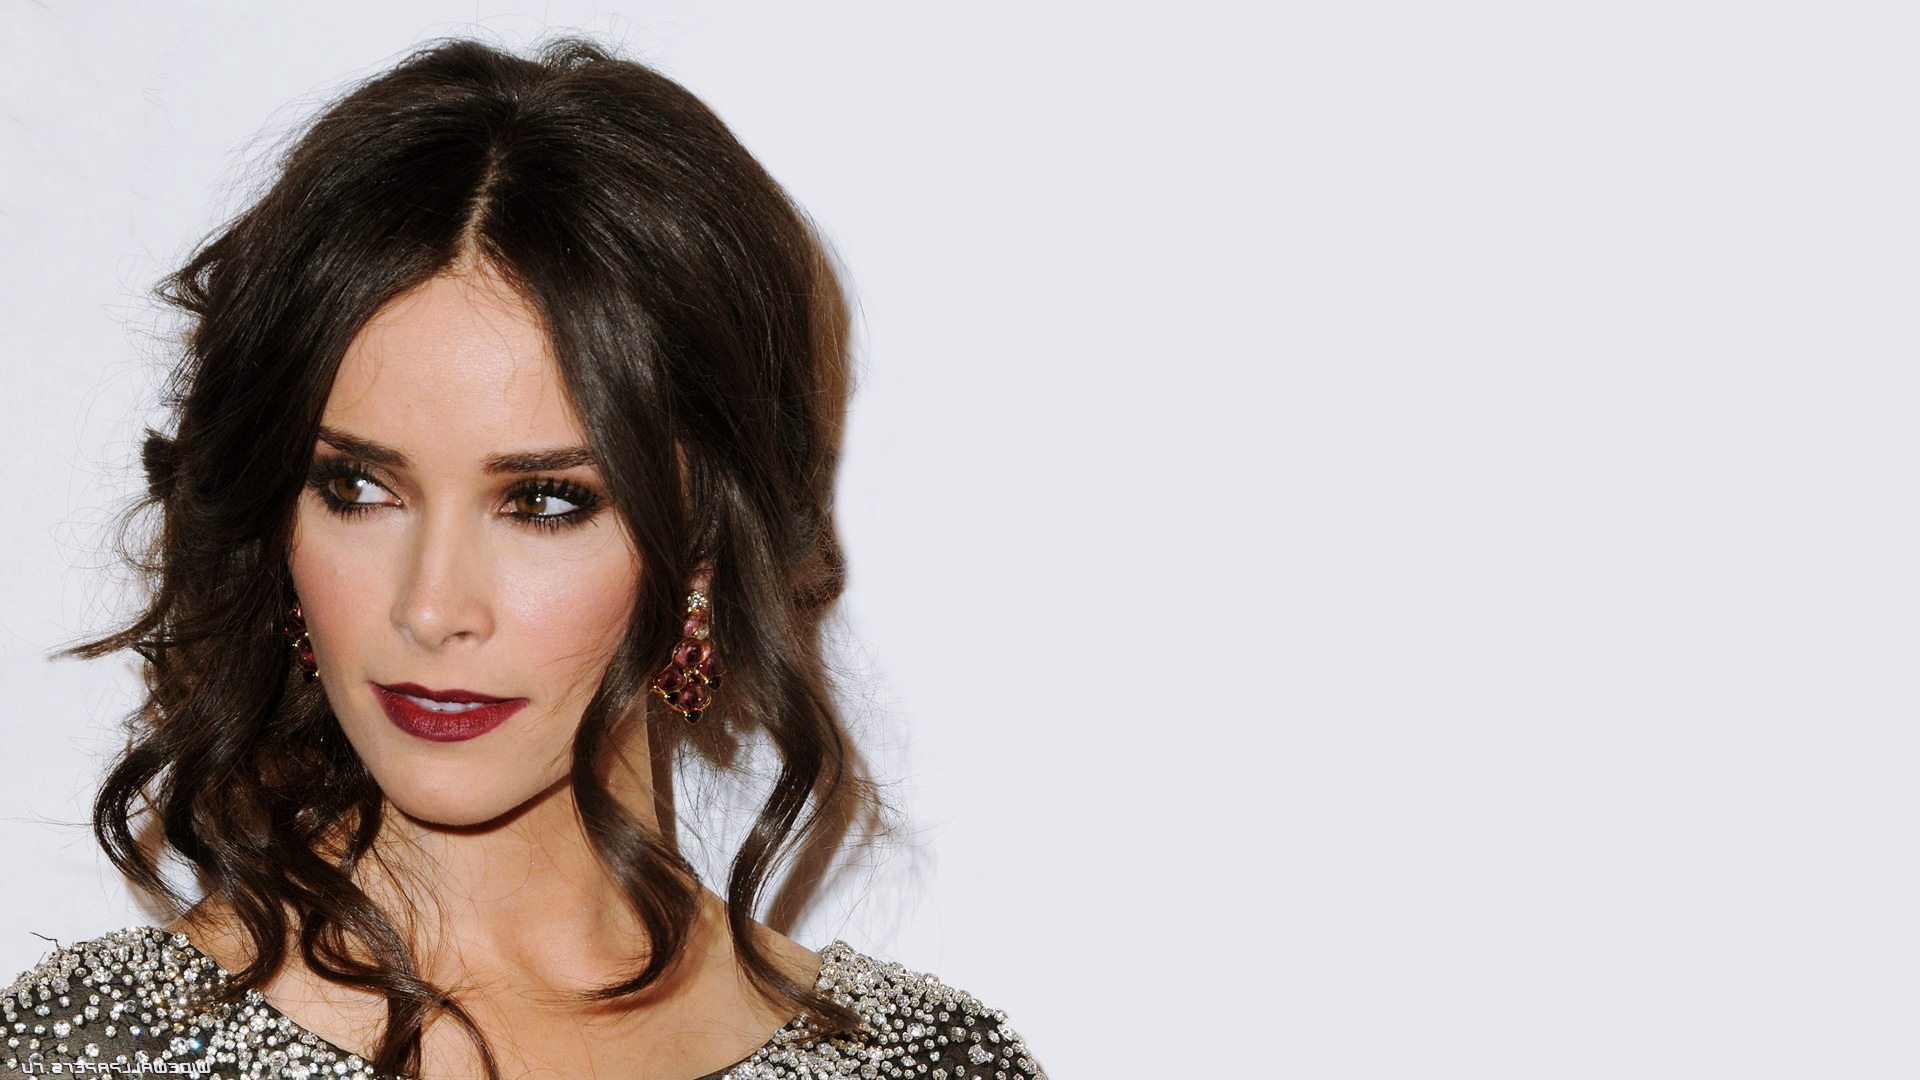 1920x1080 - Abigail Spencer Wallpapers 3